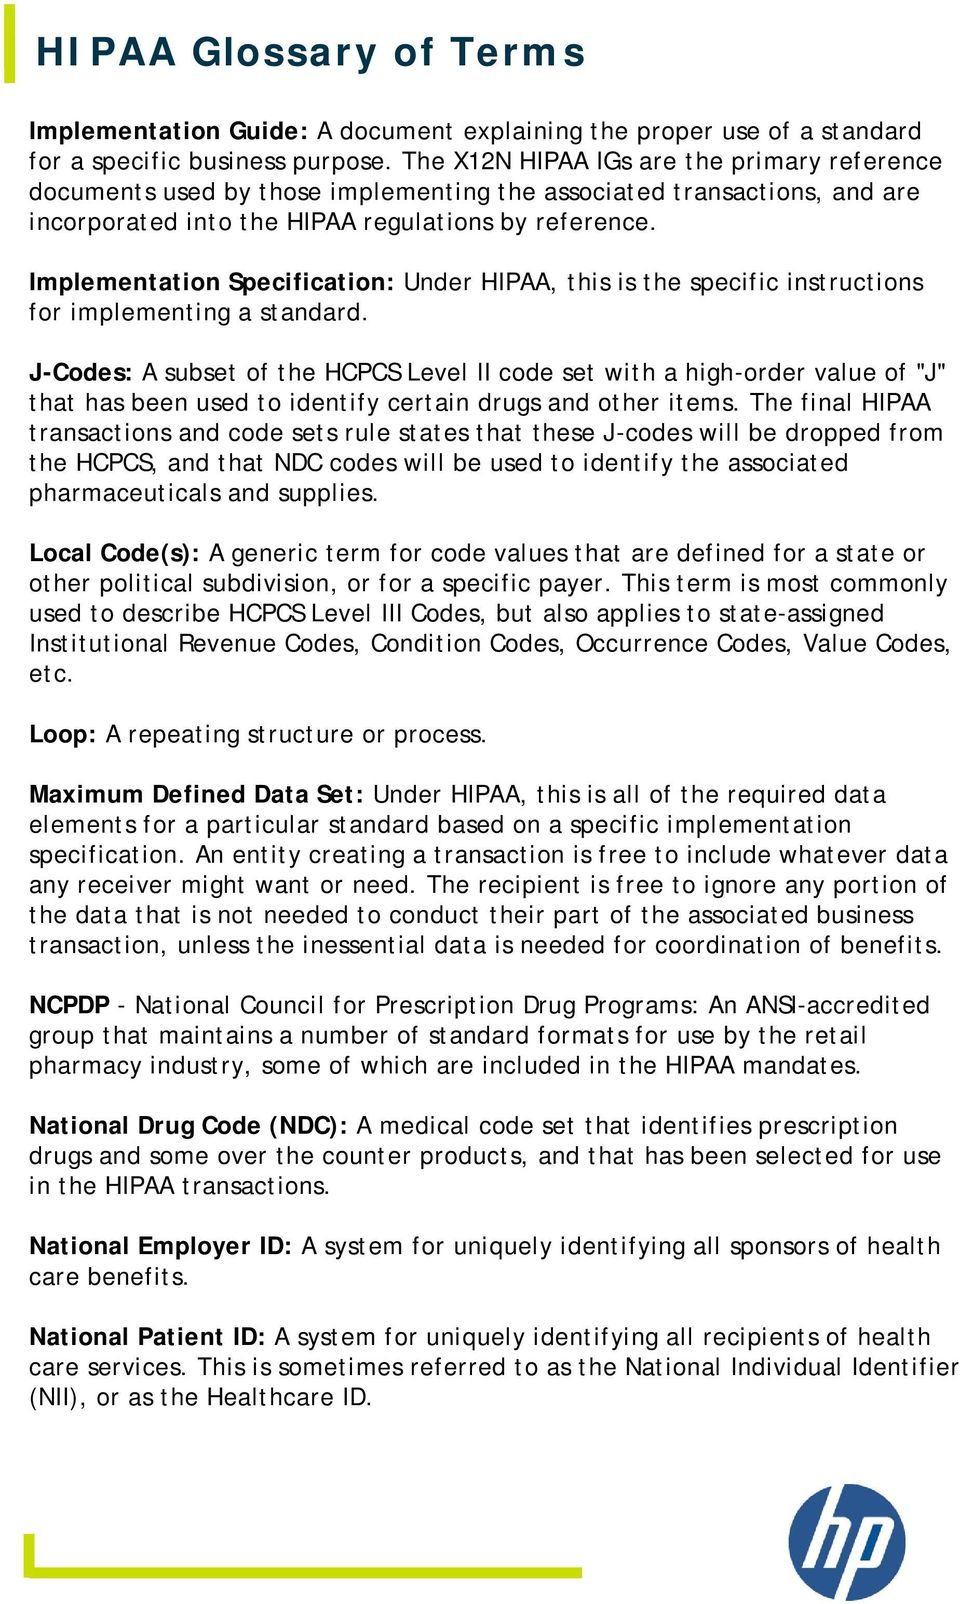 Implementation Specification: Under HIPAA, this is the specific instructions for implementing a standard.